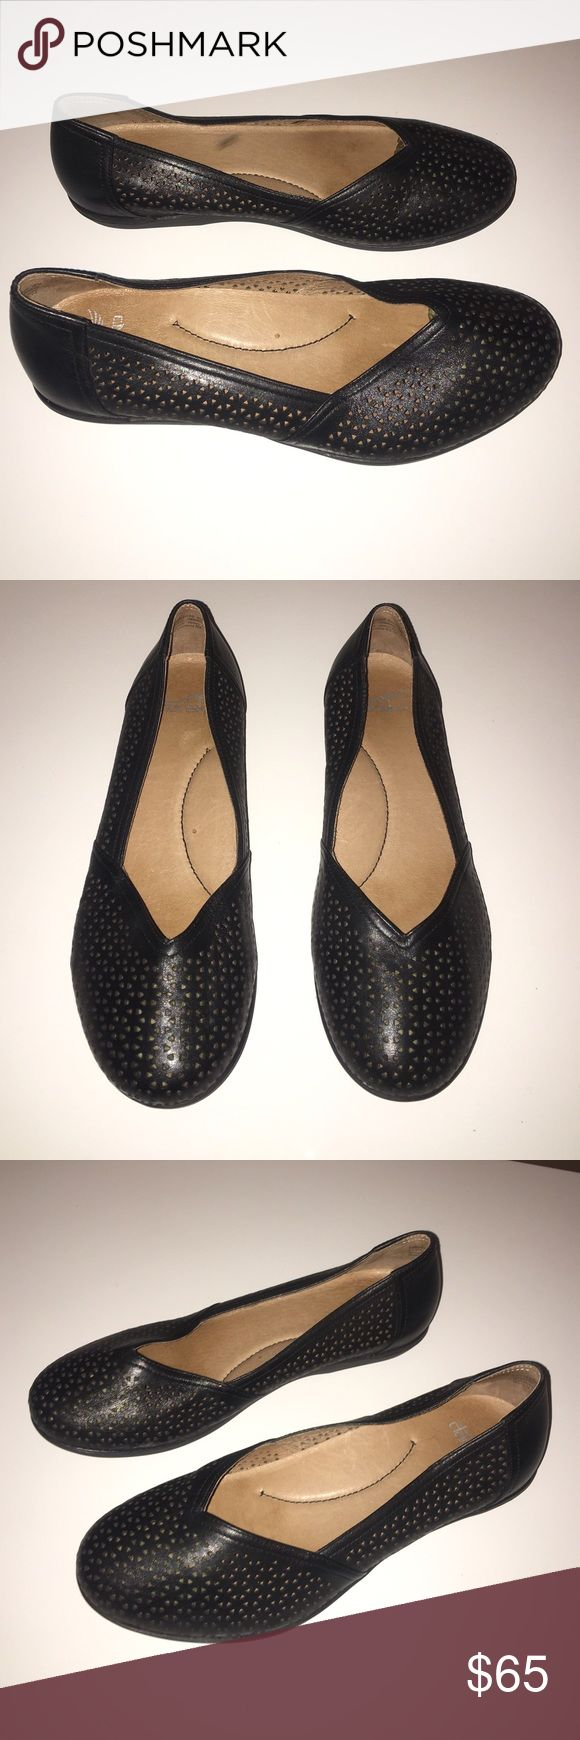 Dansko black leather flats small wedge sz 9 Excellent condition authentic Dansko black leather flats small wedge sz 9 Euro 39 but fit sz 9 very comfortable shoes Dansko Shoes Flats & Loafers